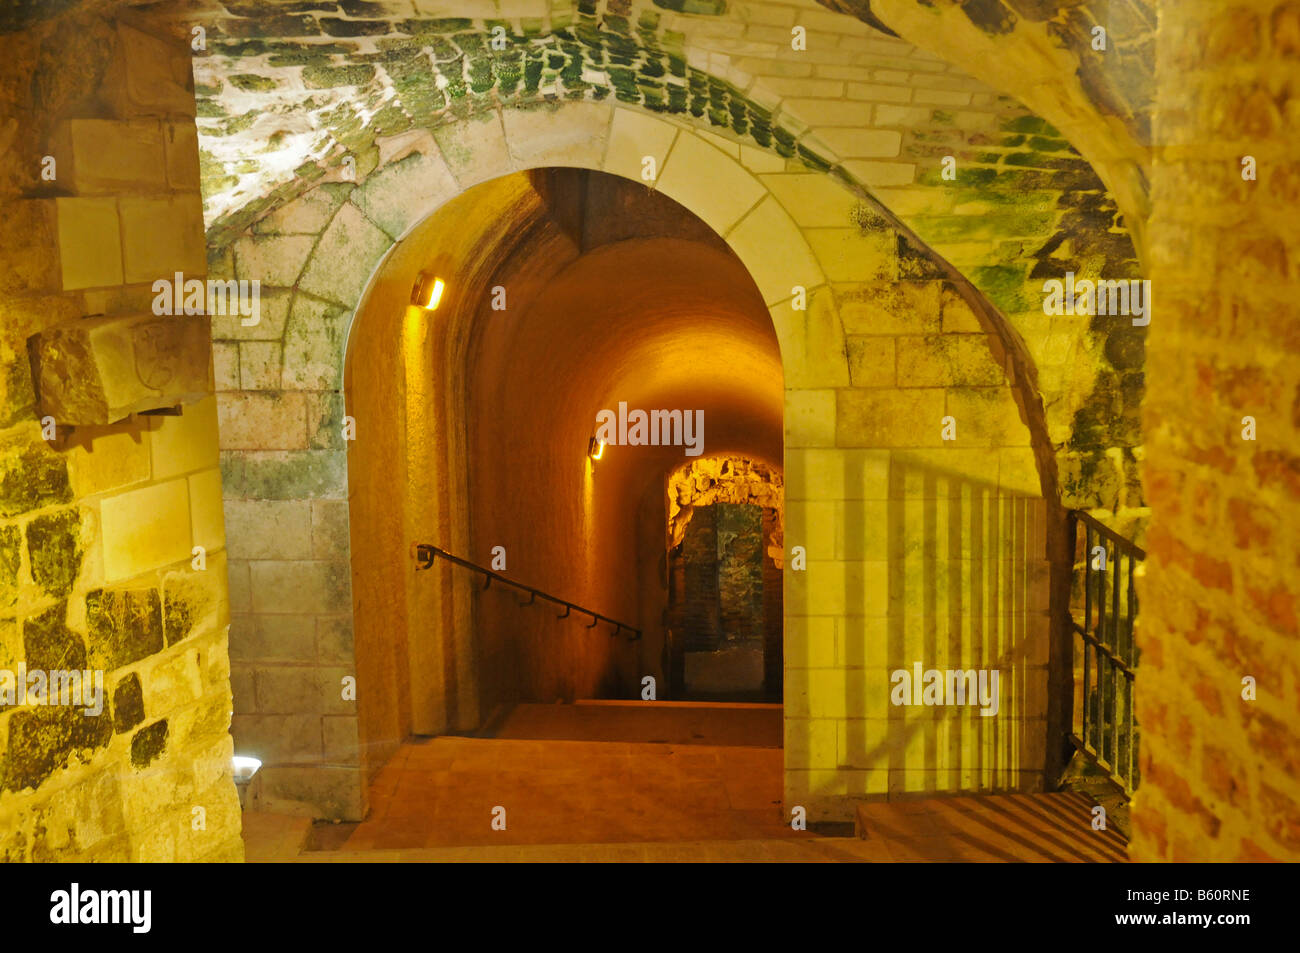 Entrance, Les Boves, underground passages, historic building, Arras, Nord Pas de Calais, France, EuropeStock Photo